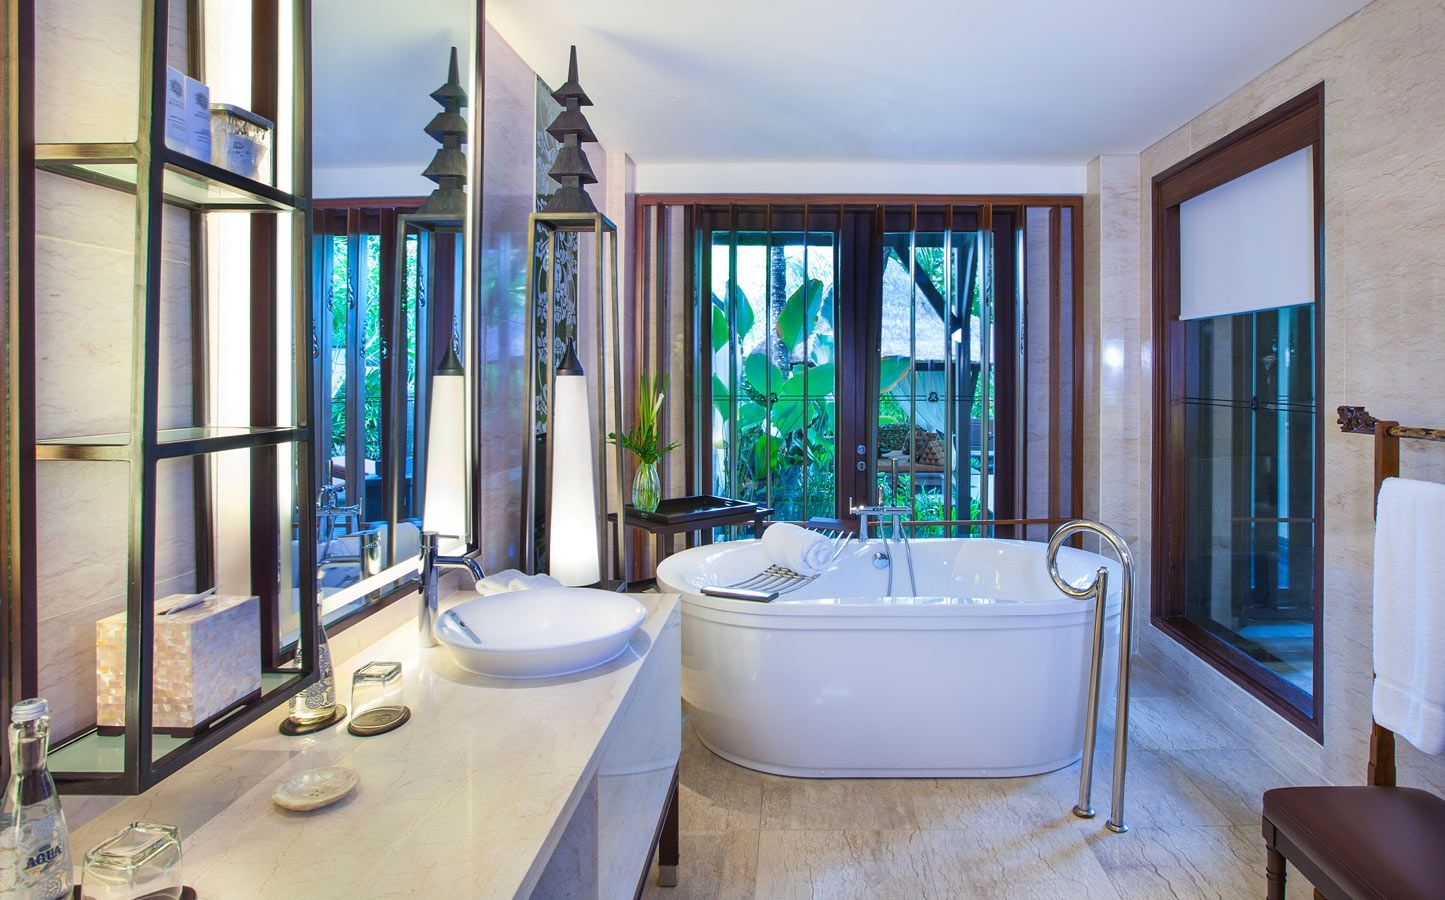 Luxury Accommodation in Bali | St. Regis Pool Suite |St. Regis Bali